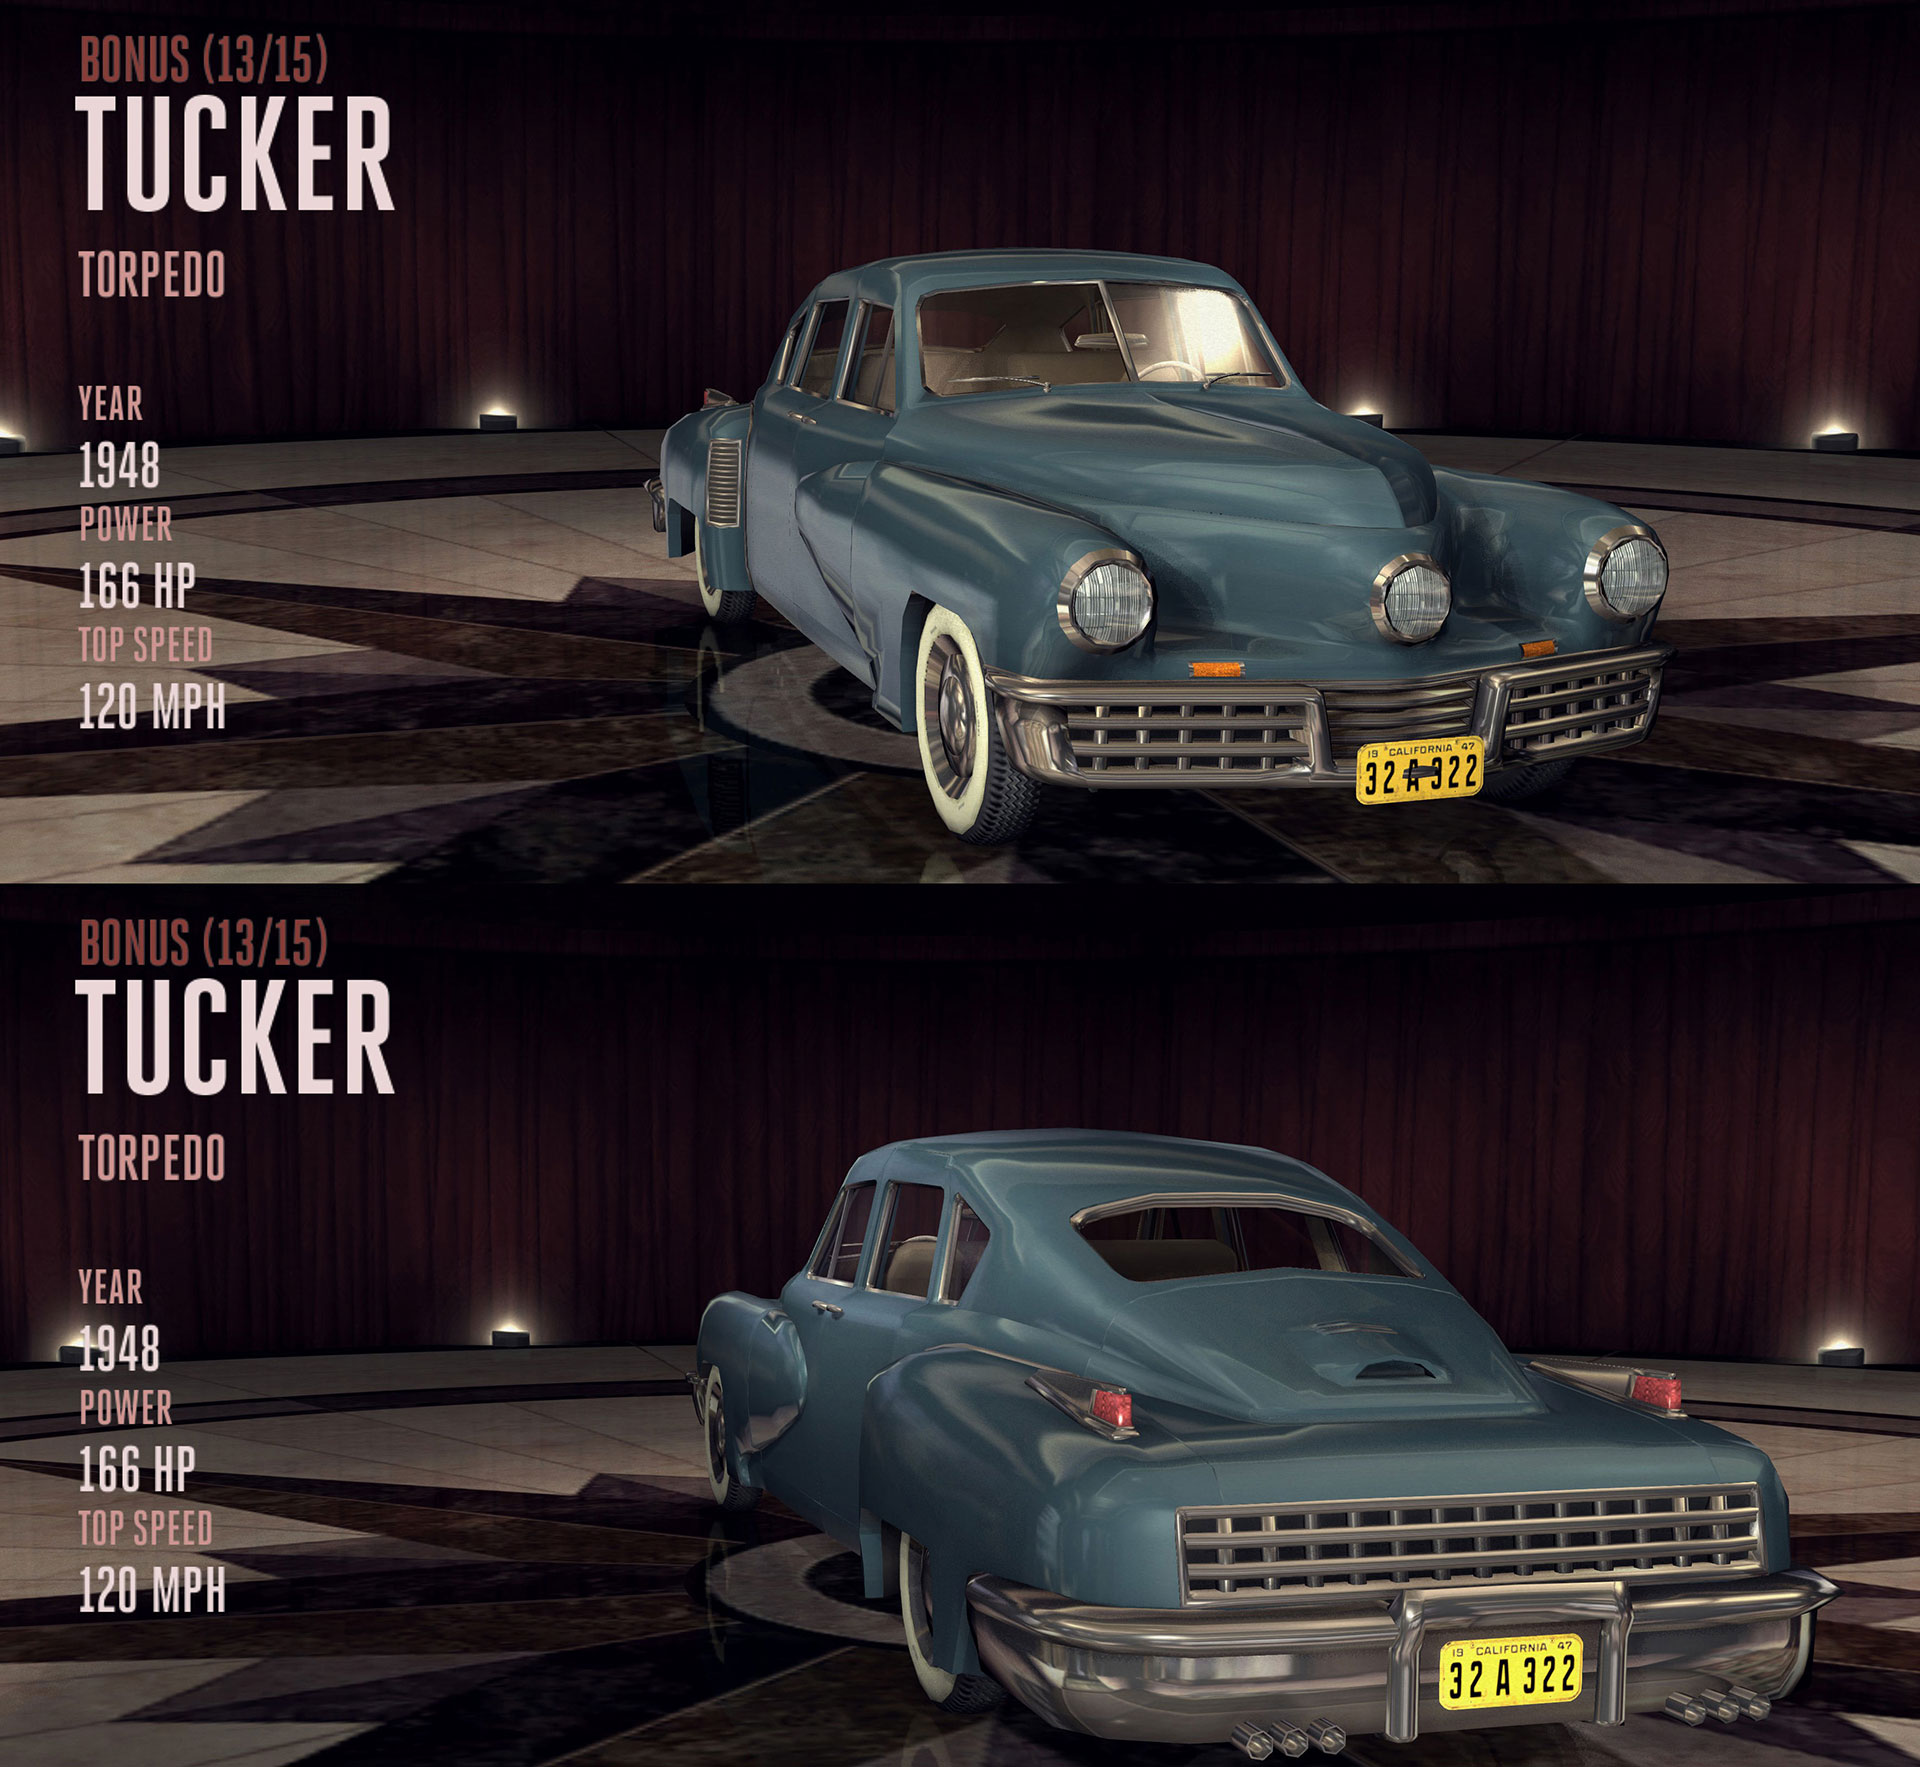 Tucker Torpedo | L.A. Noire Wiki | FANDOM powered by Wikia